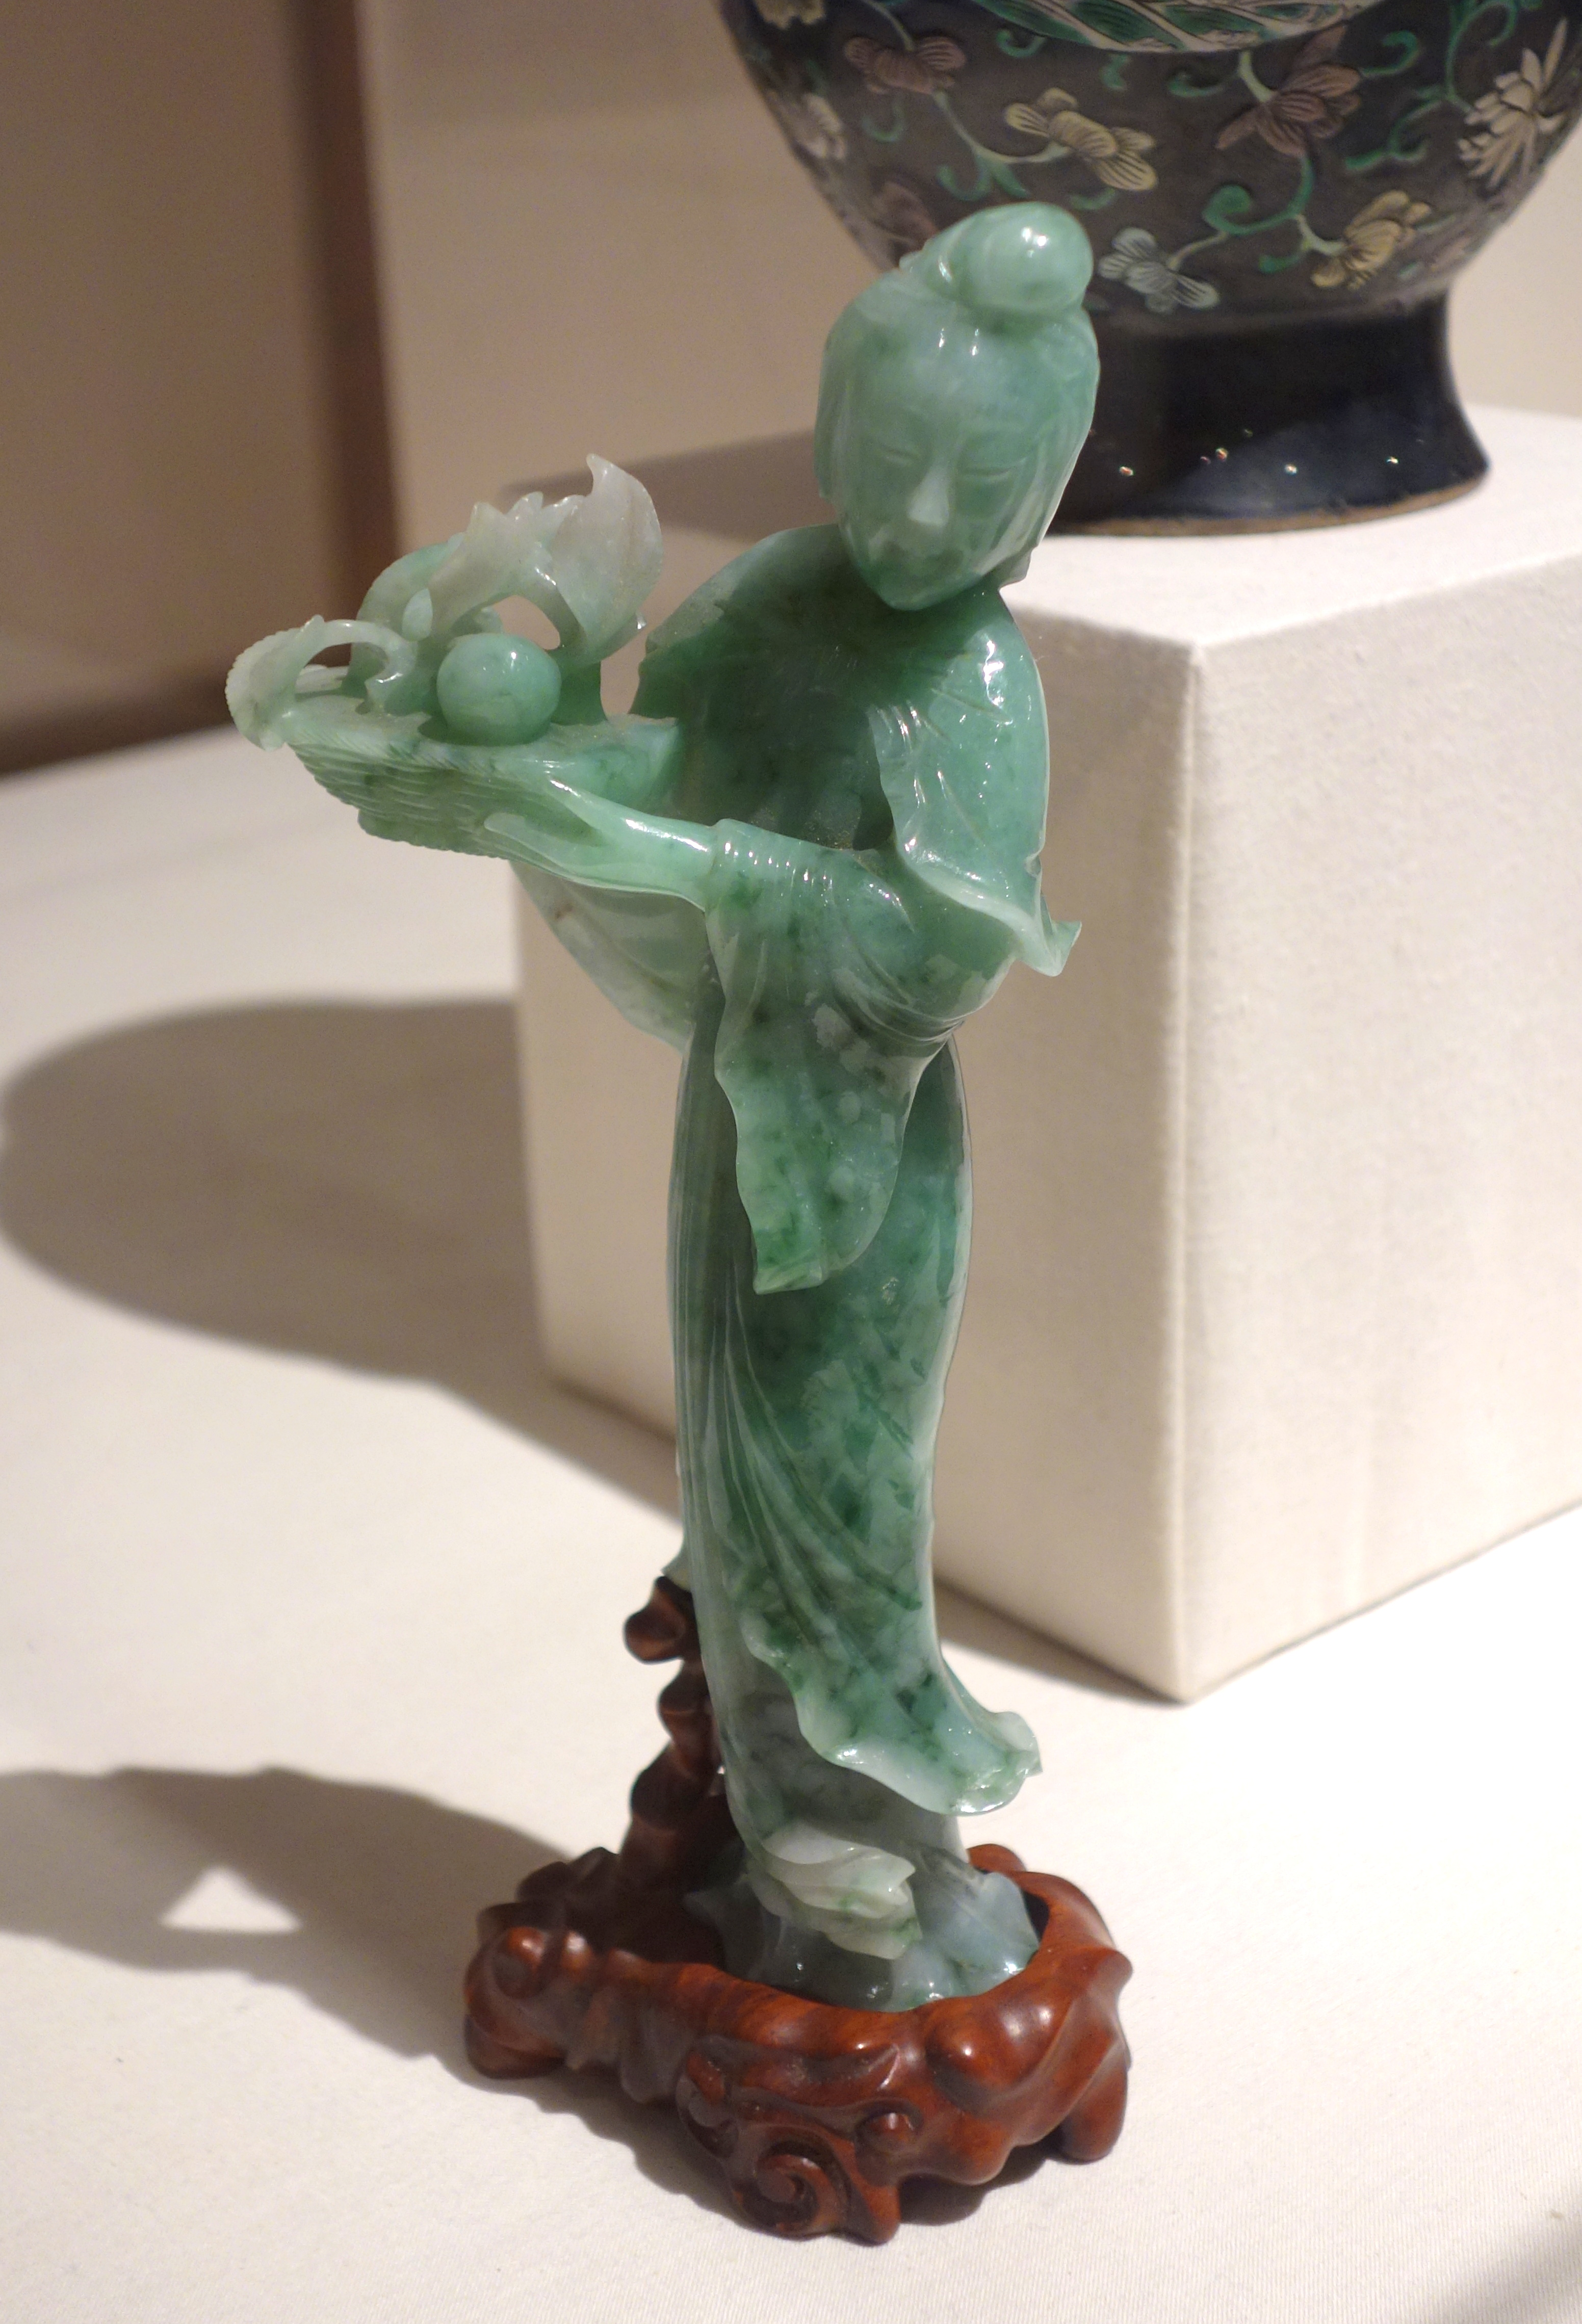 Chinese Figure of Lan Caihe Qing Dynasty Daoguang Period 1821-1850 jadeite - Huntington Museum of Art - DSC05256